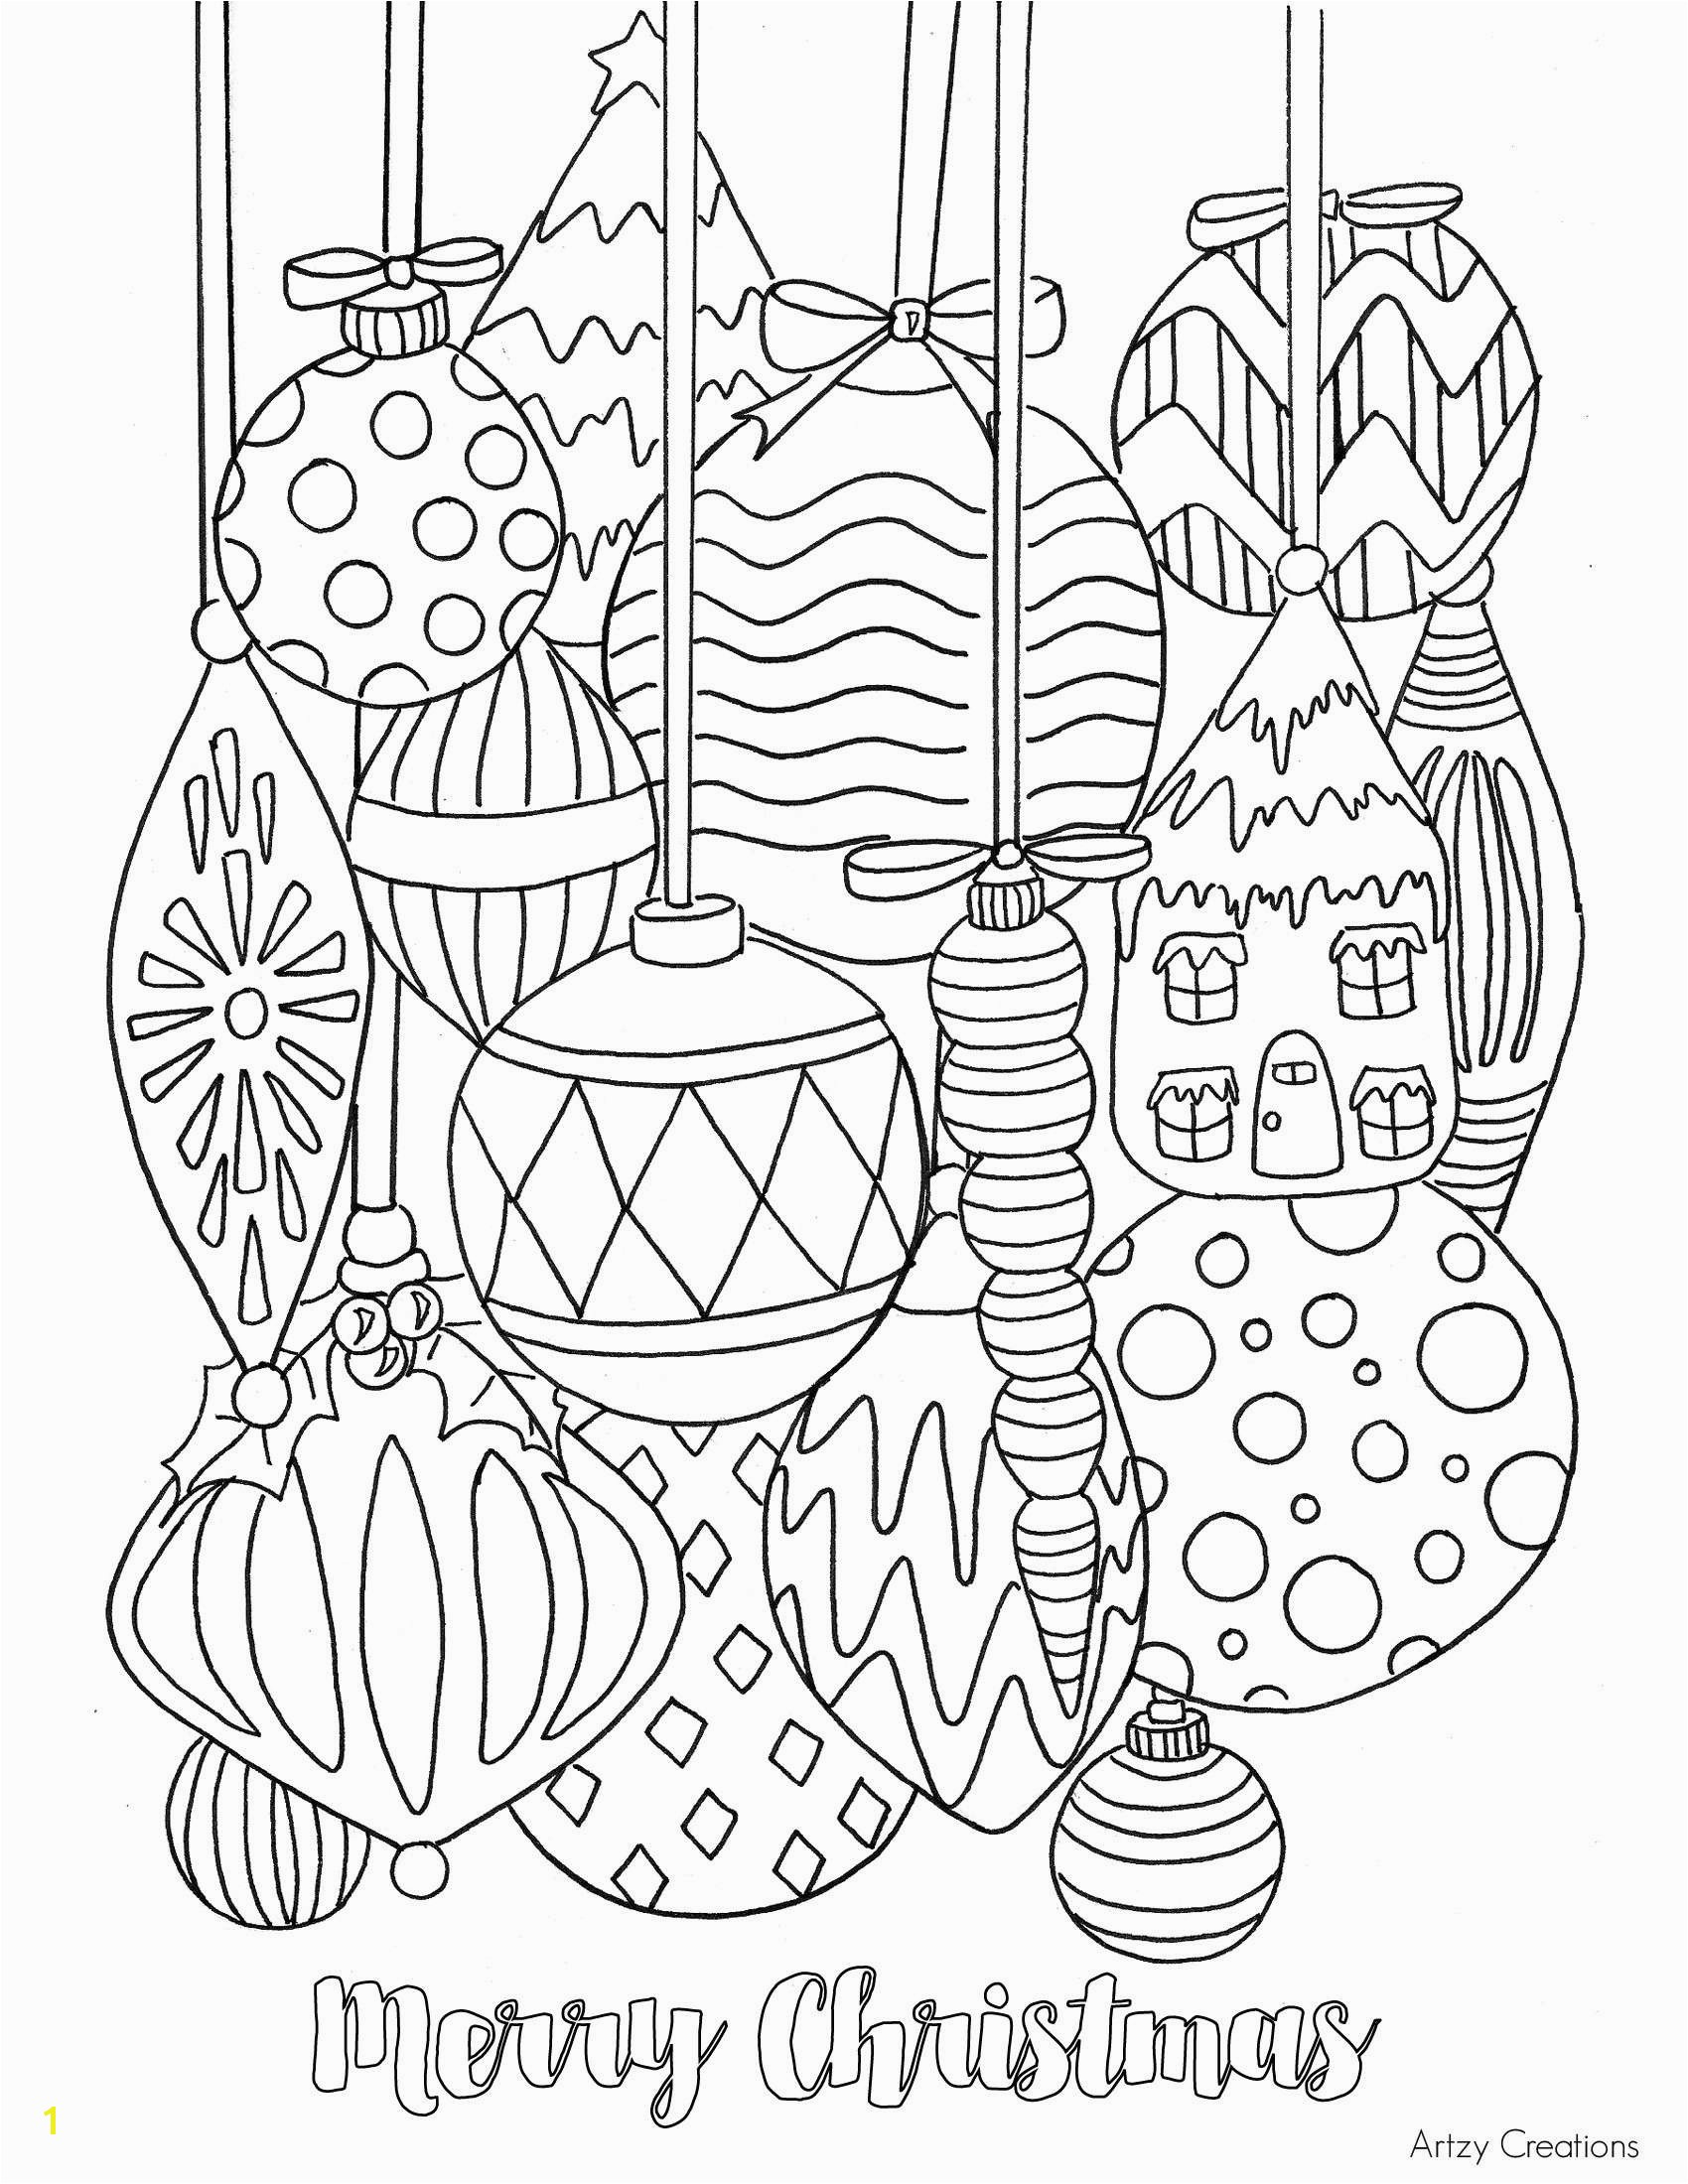 Christmas Coloring Cards Inspirational Cool Coloring Pages Printable New Printable Cds 0d Coloring Pages